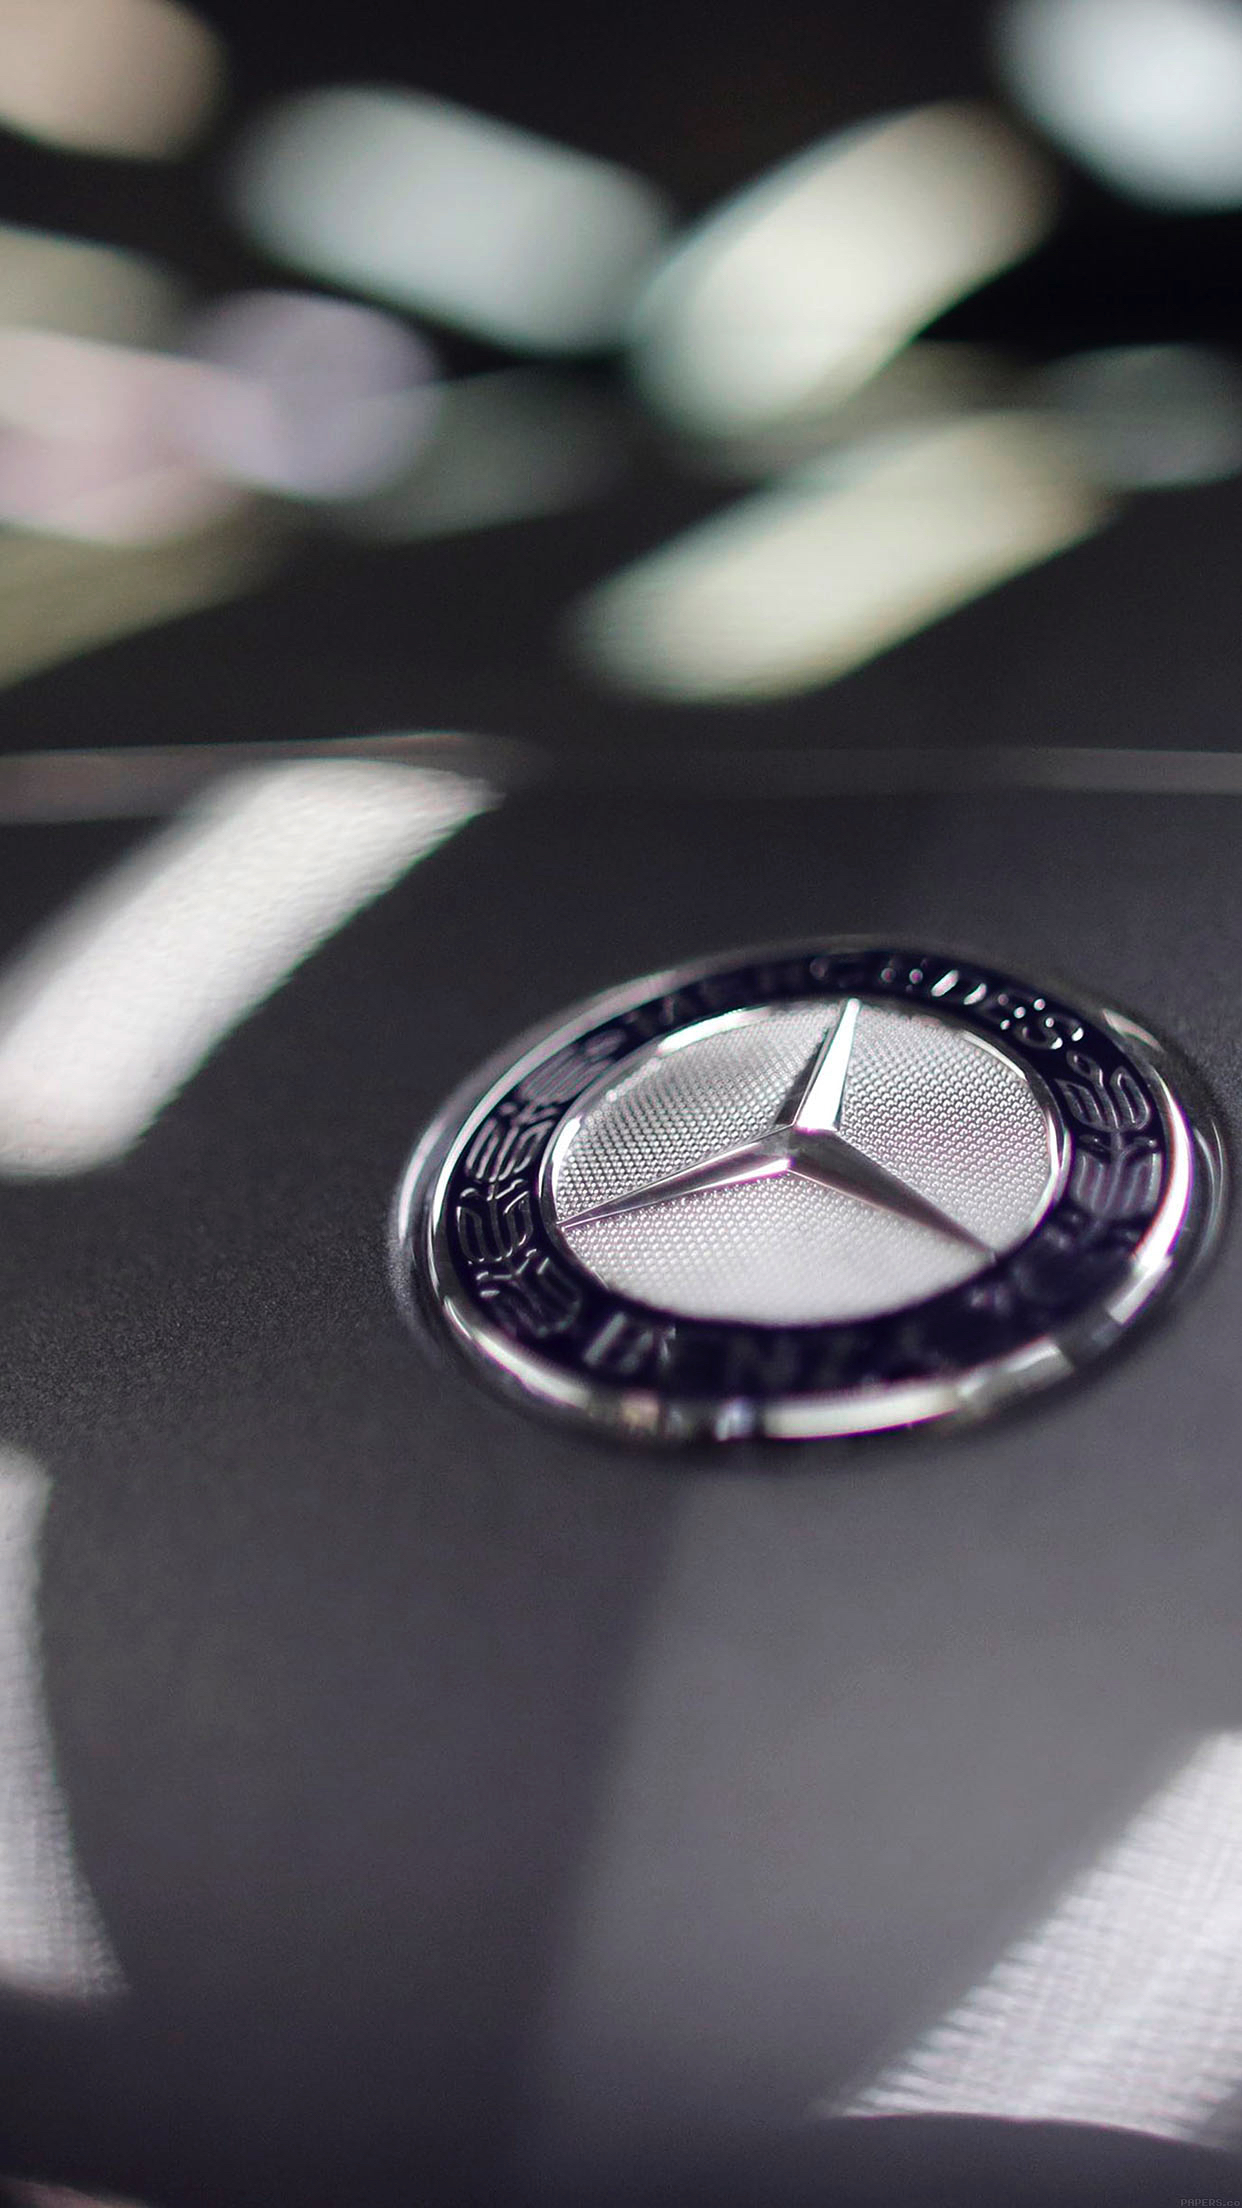 Iphone benz logo free apple papers iphone benz logo voltagebd Image collections